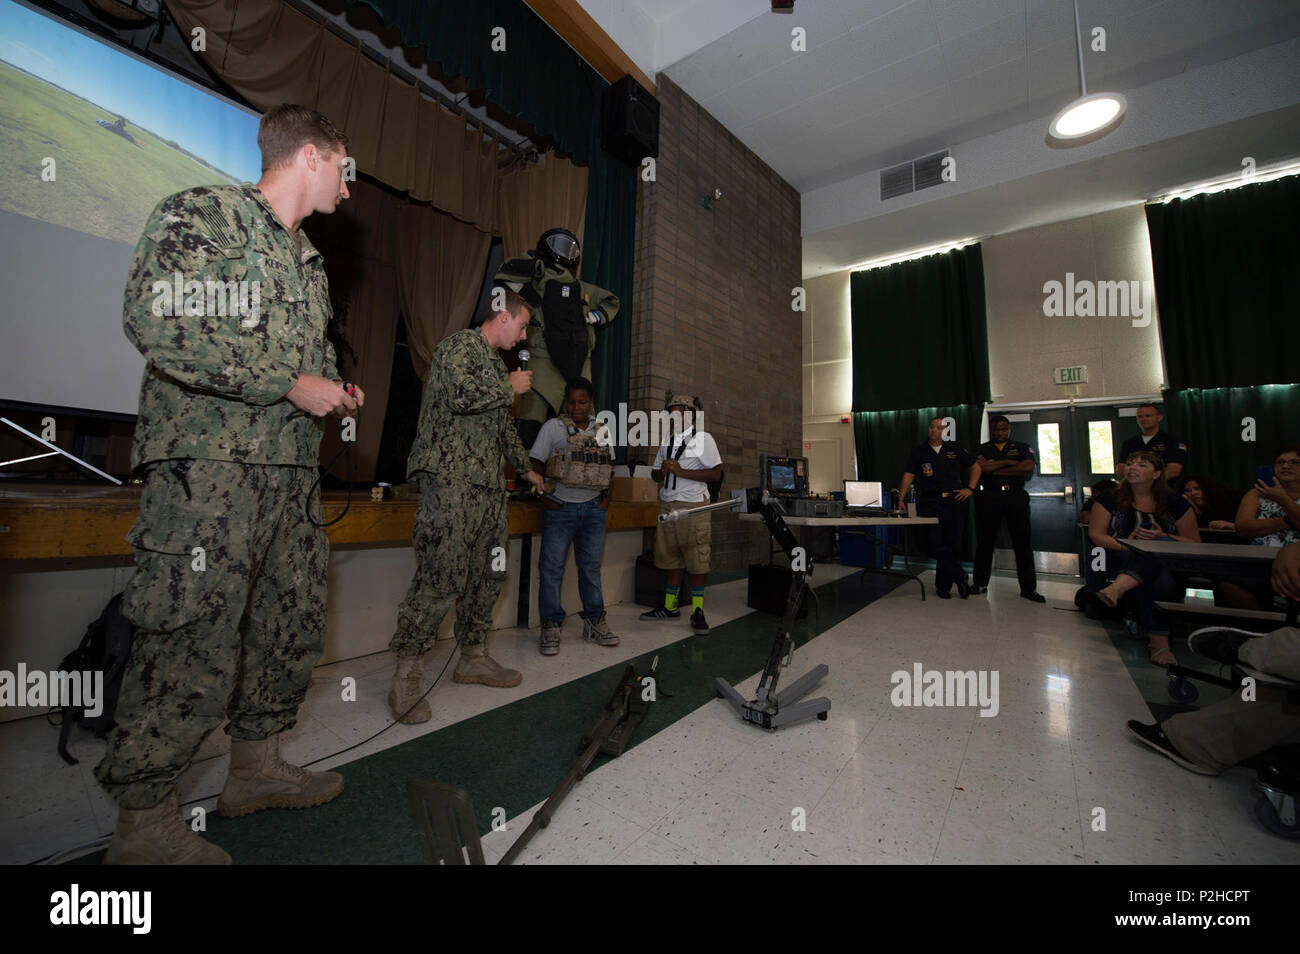 160927-N-KB426-015   SACRAMENTO, Calif. (Sept. 27, 2016) Sailors, assigned to Explosive Ordnance Disposal Mobile Unit (EODMU) 3, speak with Mills Middle School students during a presentation as part of Sacramento Navy Week 2016. Navy Weeks focus a variety of assets, equipment and personnel on a single city for a week-long series of engagements designed to bring America's Navy closer to the people it protects, in cities that do not have a large naval presence. (U.S. Navy photo by Mass Communication Specialist 3rd Class James Vazquez/Released) - Stock Image